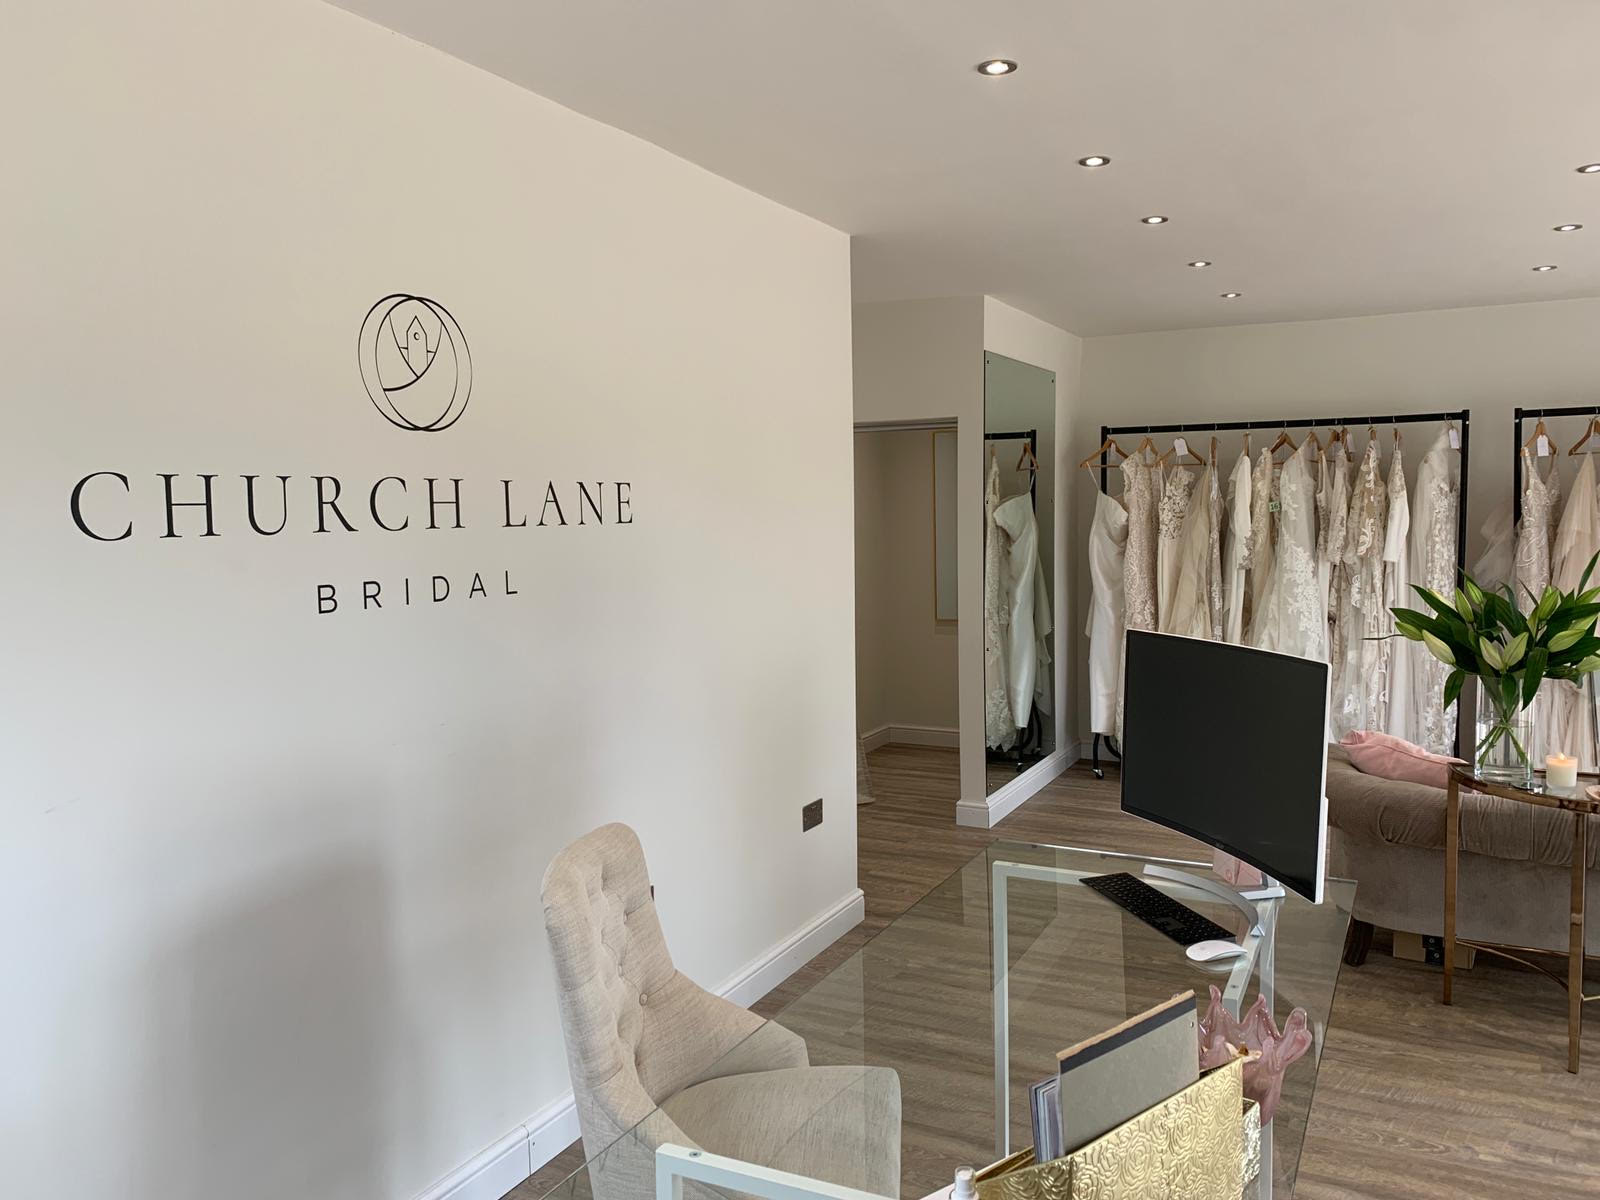 Church Lane Bridal – Signage Design